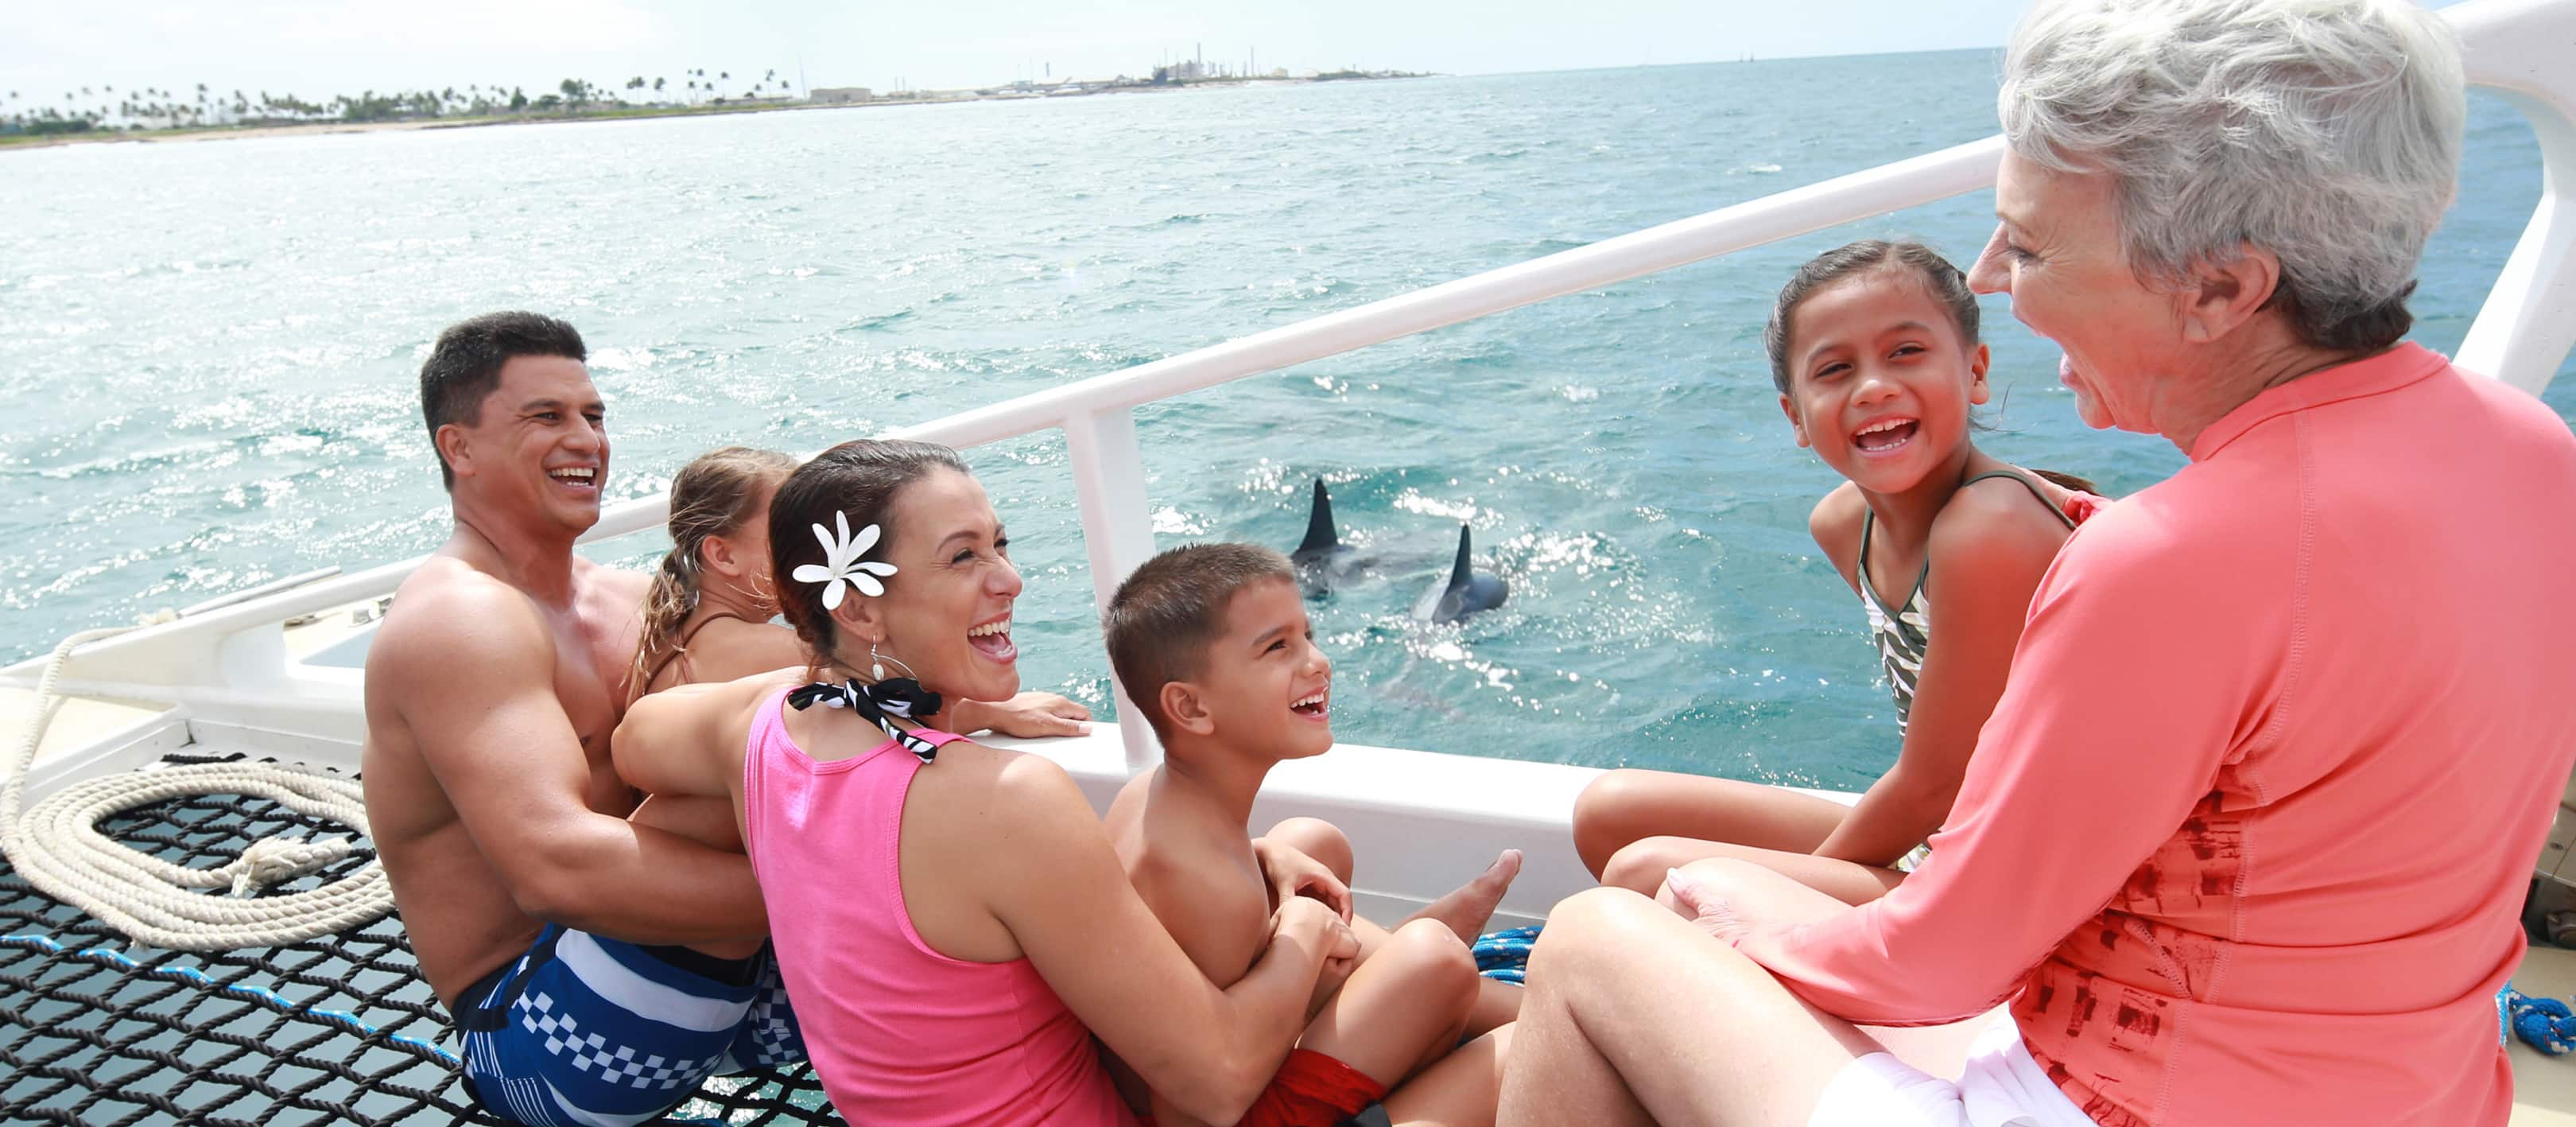 A grandmother, father, mother and 3 children enjoy a catamaran excursion while dolphins swim nearby